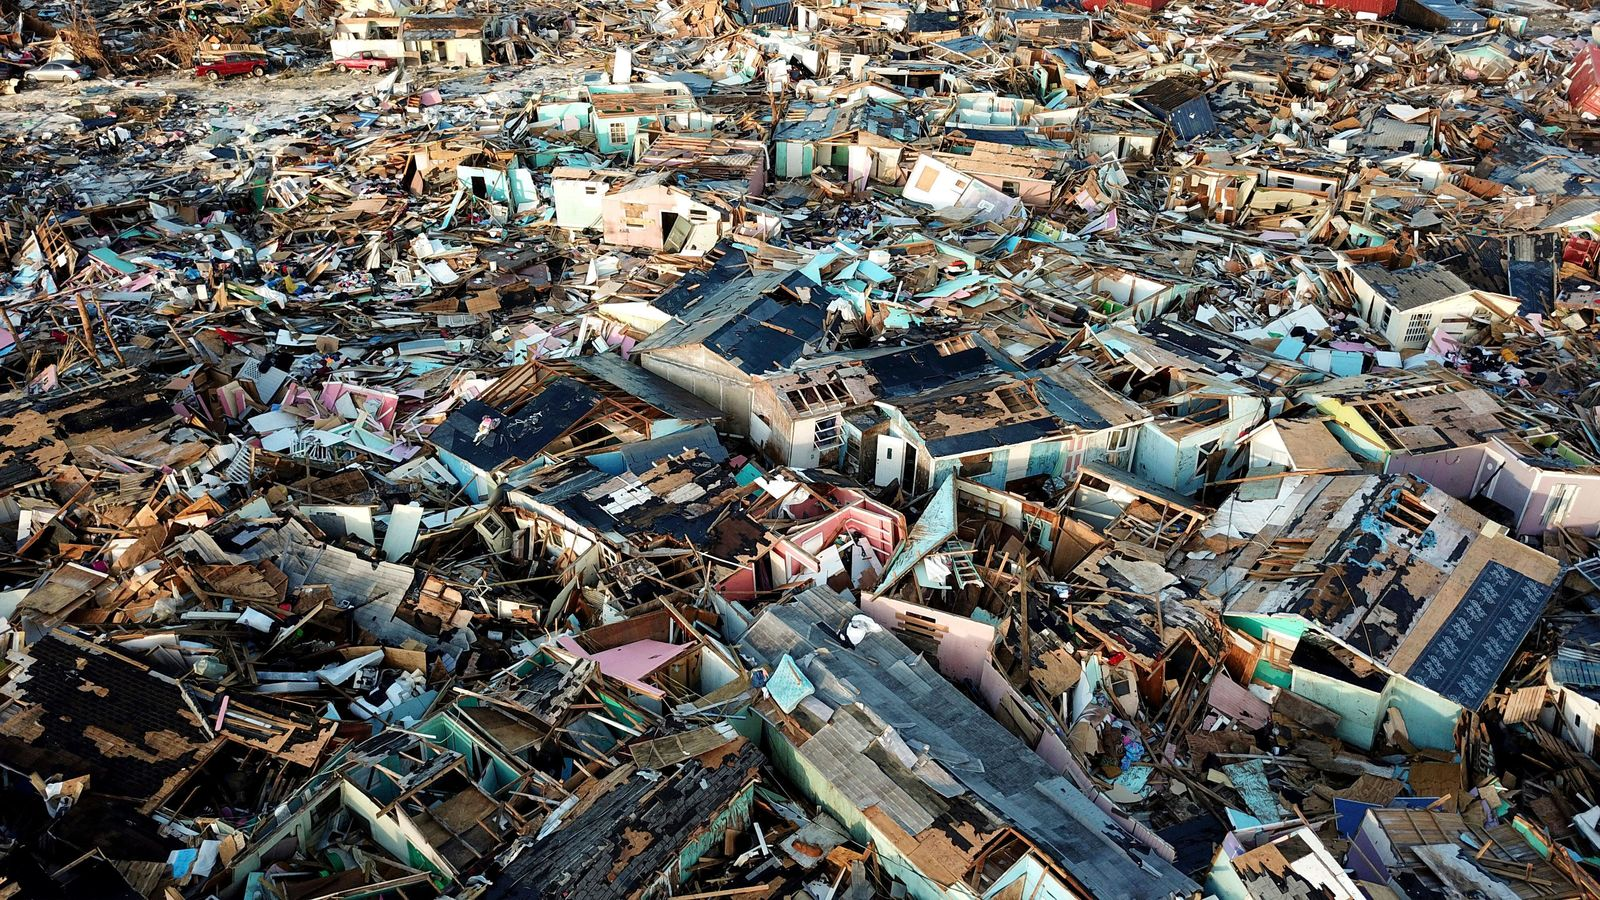 Homes lay in ruins one week after Hurricane Dorian hit The Mudd neighborhood, in the Marsh Harbor area of Abaco, Bahamas, Monday, Sept. 9, 2019. (AP Photo/Fernando Llano)